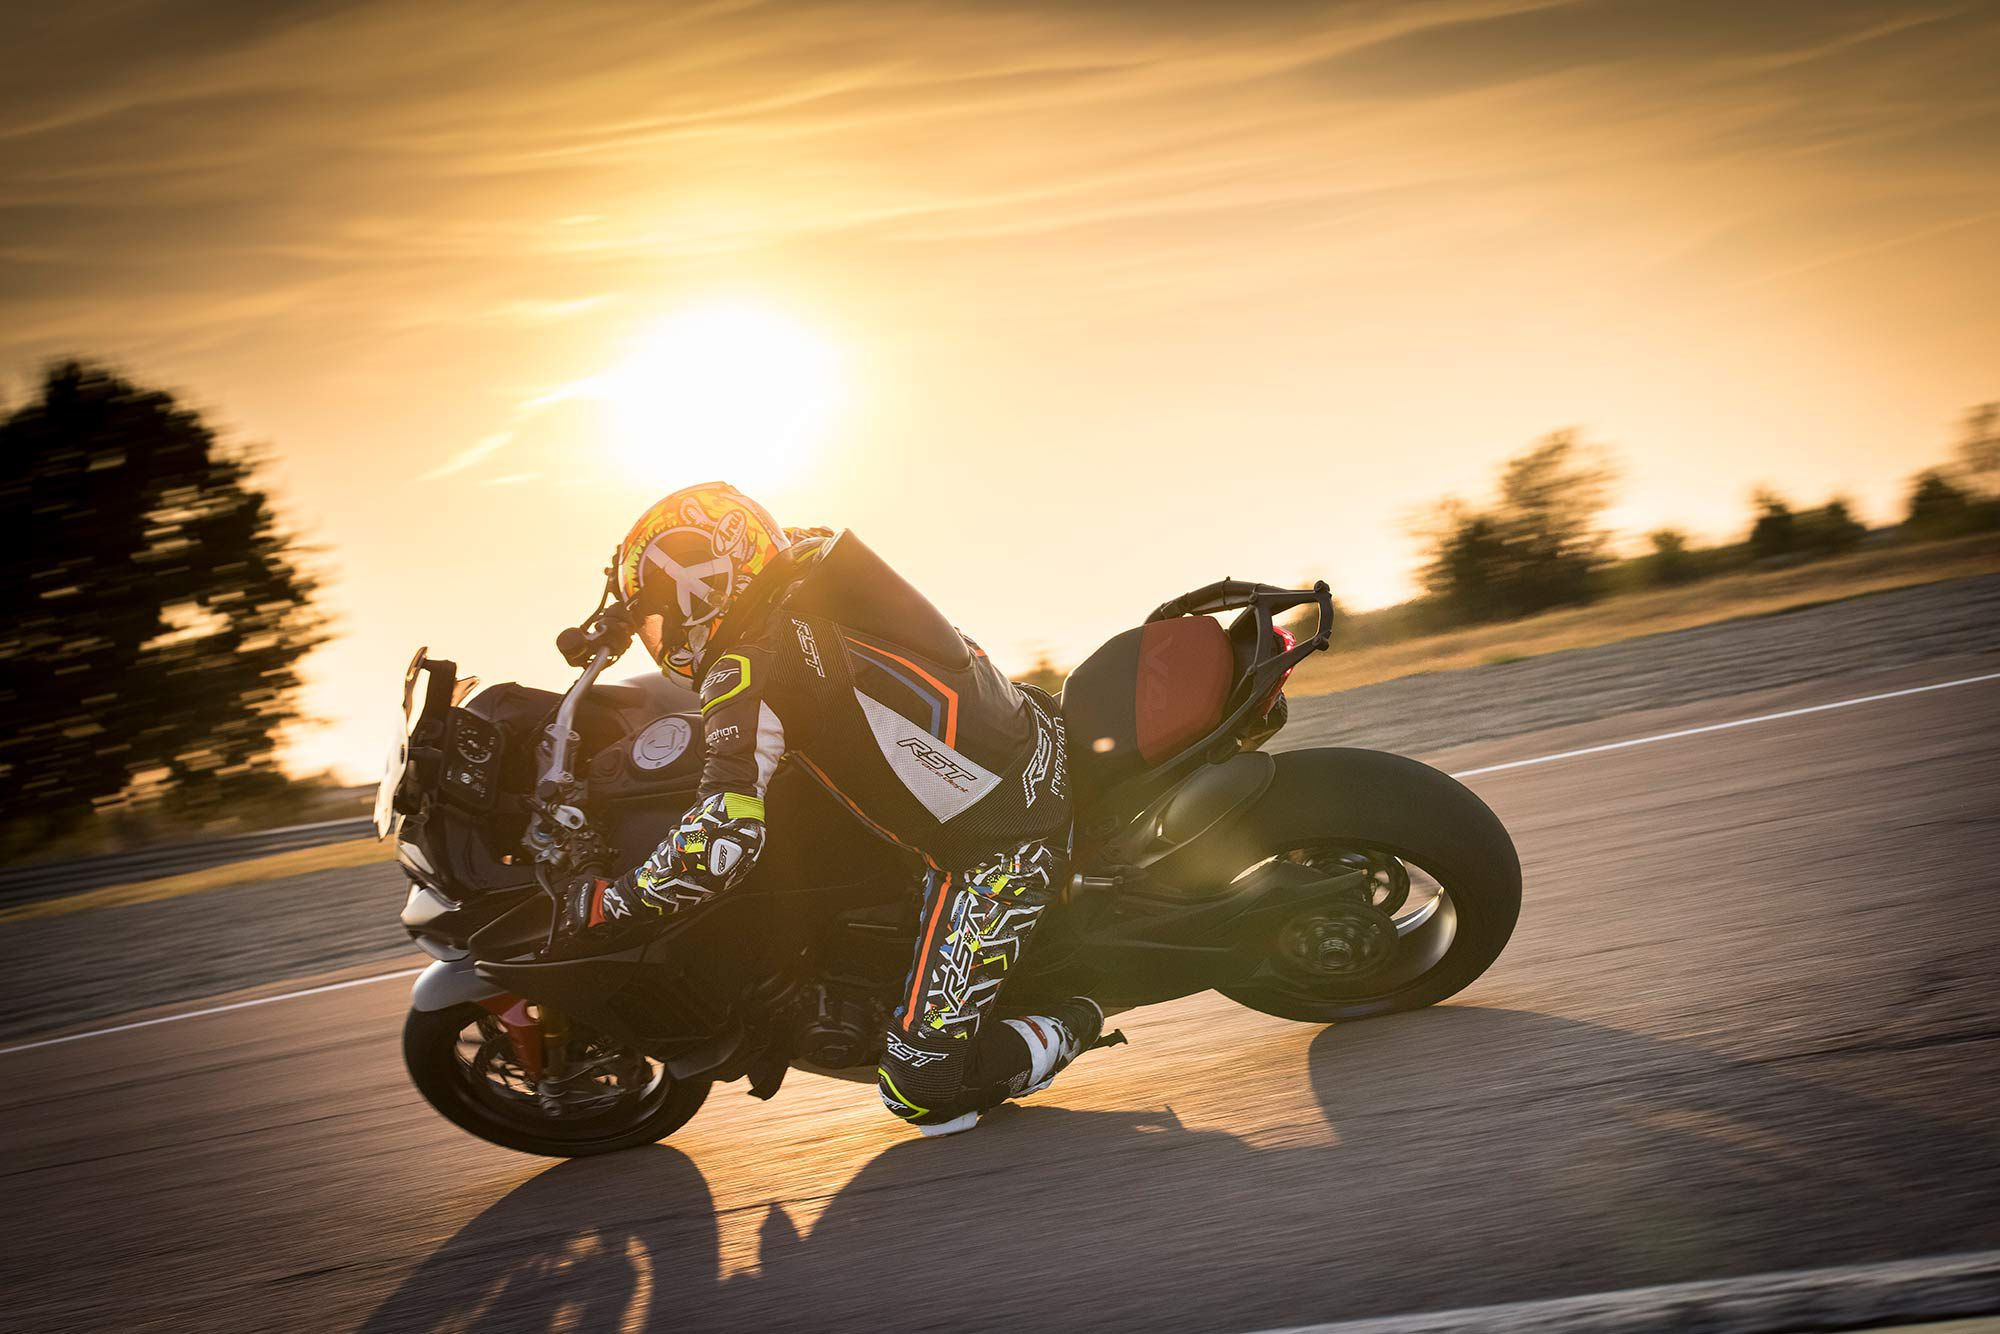 Ducati wouldn't share any numbers or specs on the upcoming Pikes Peak, but we left the racetrack impressed with its performance.